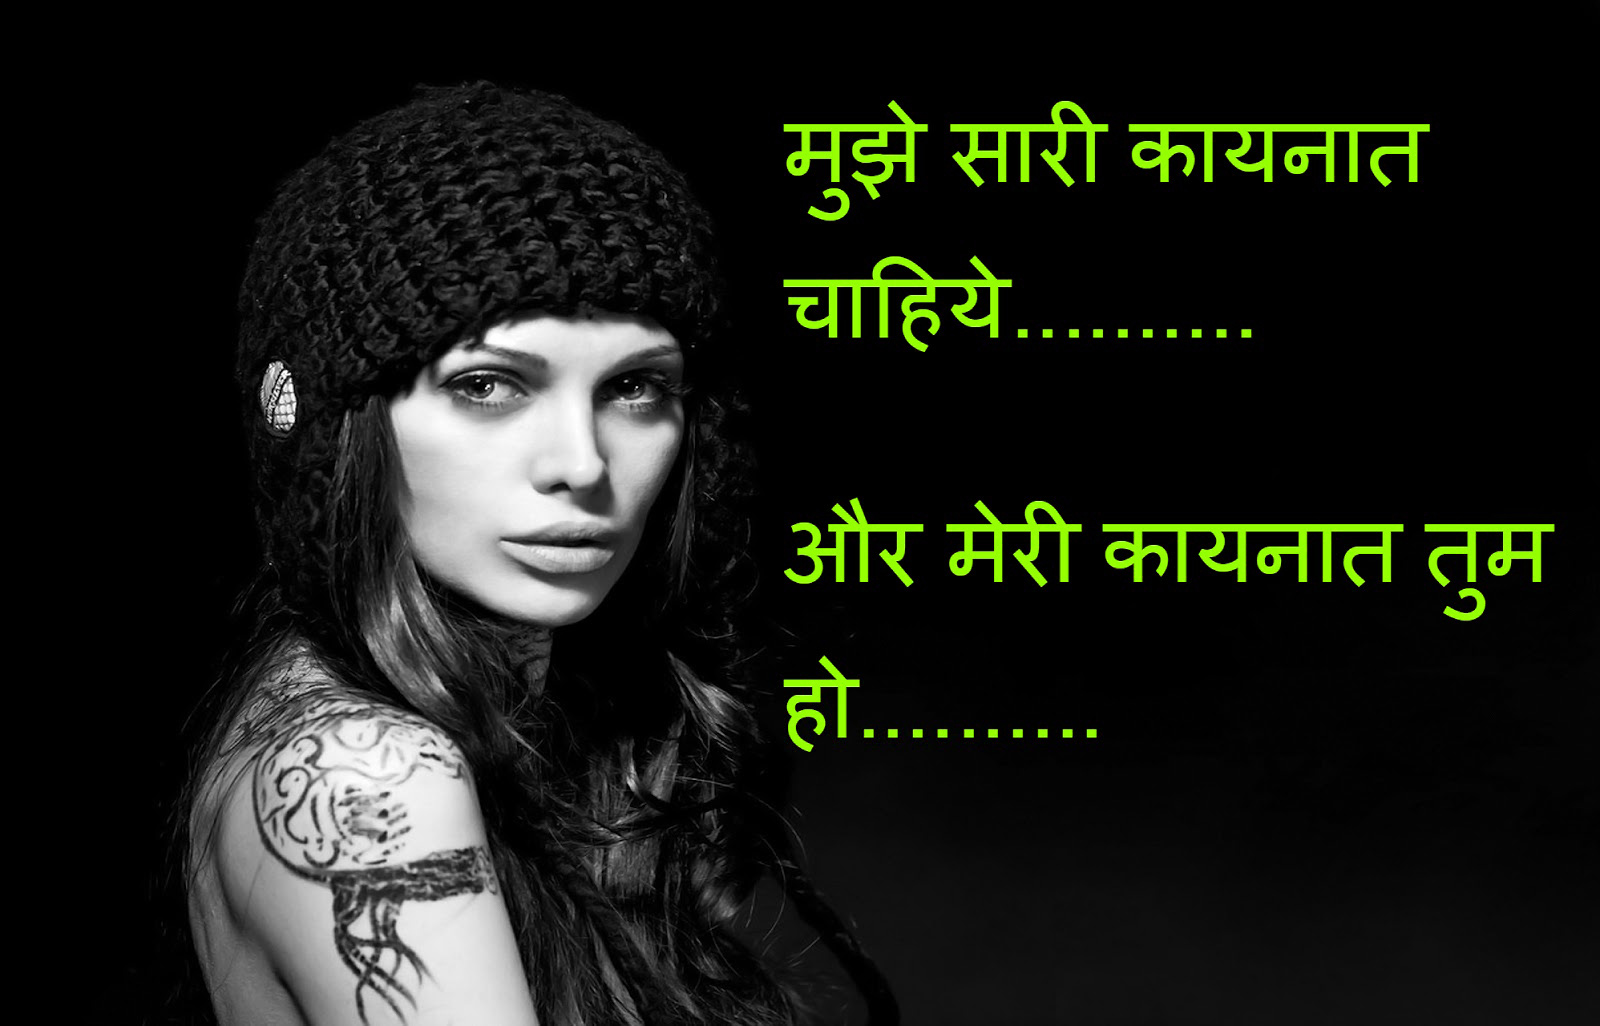 Romantic DP For Whatsapp With Hindi Wallpaper Images Pics HD